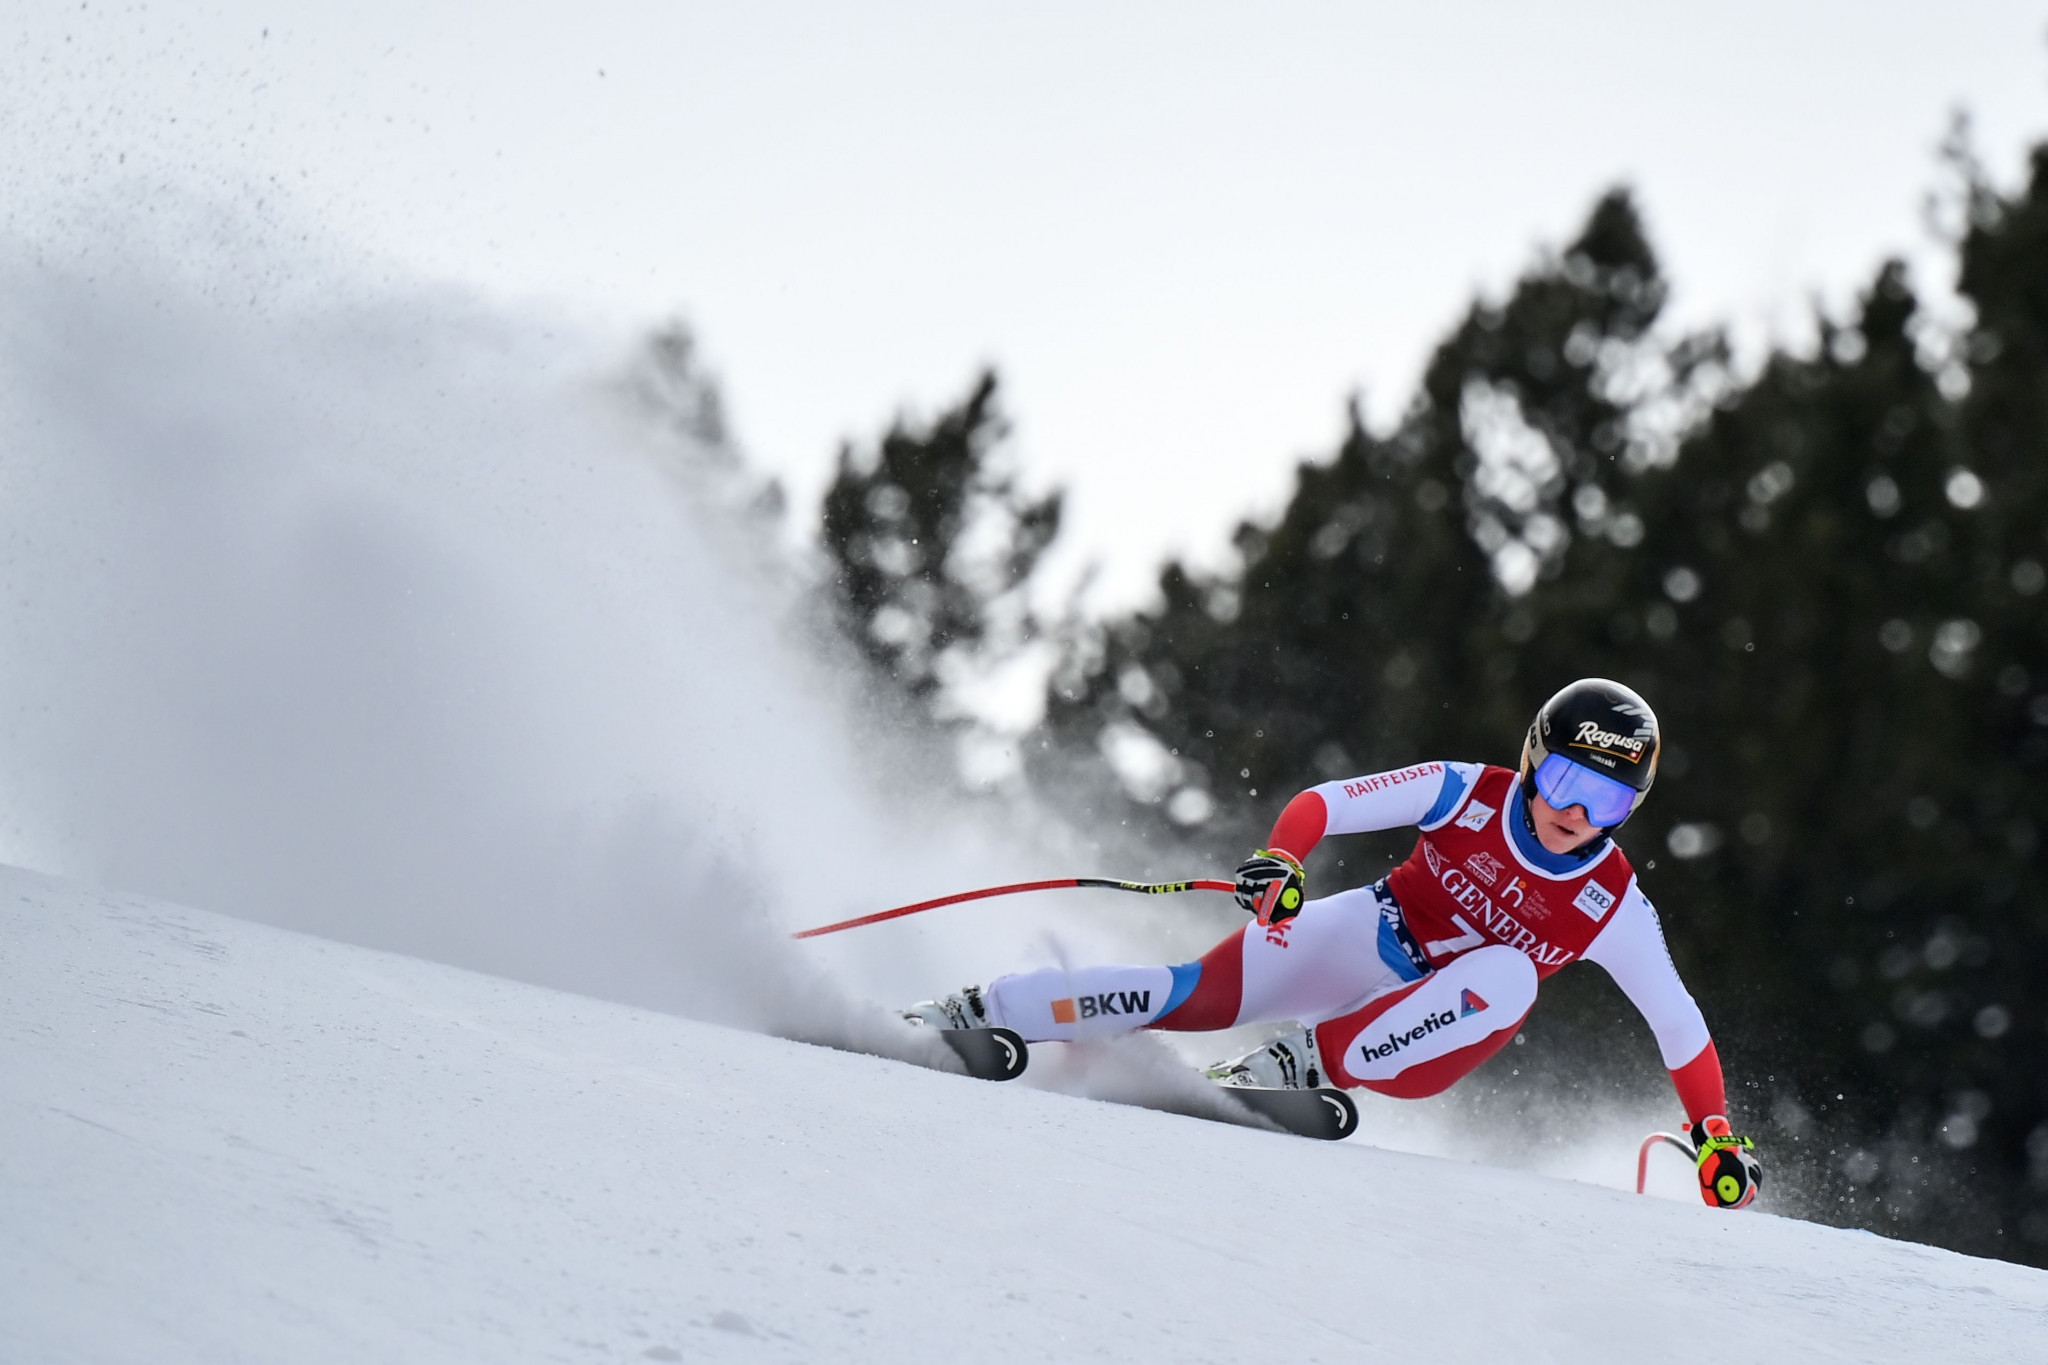 Lara Gut-Behrami now has a lead of more than 100 points in the overall World Cup standings ©Getty Images